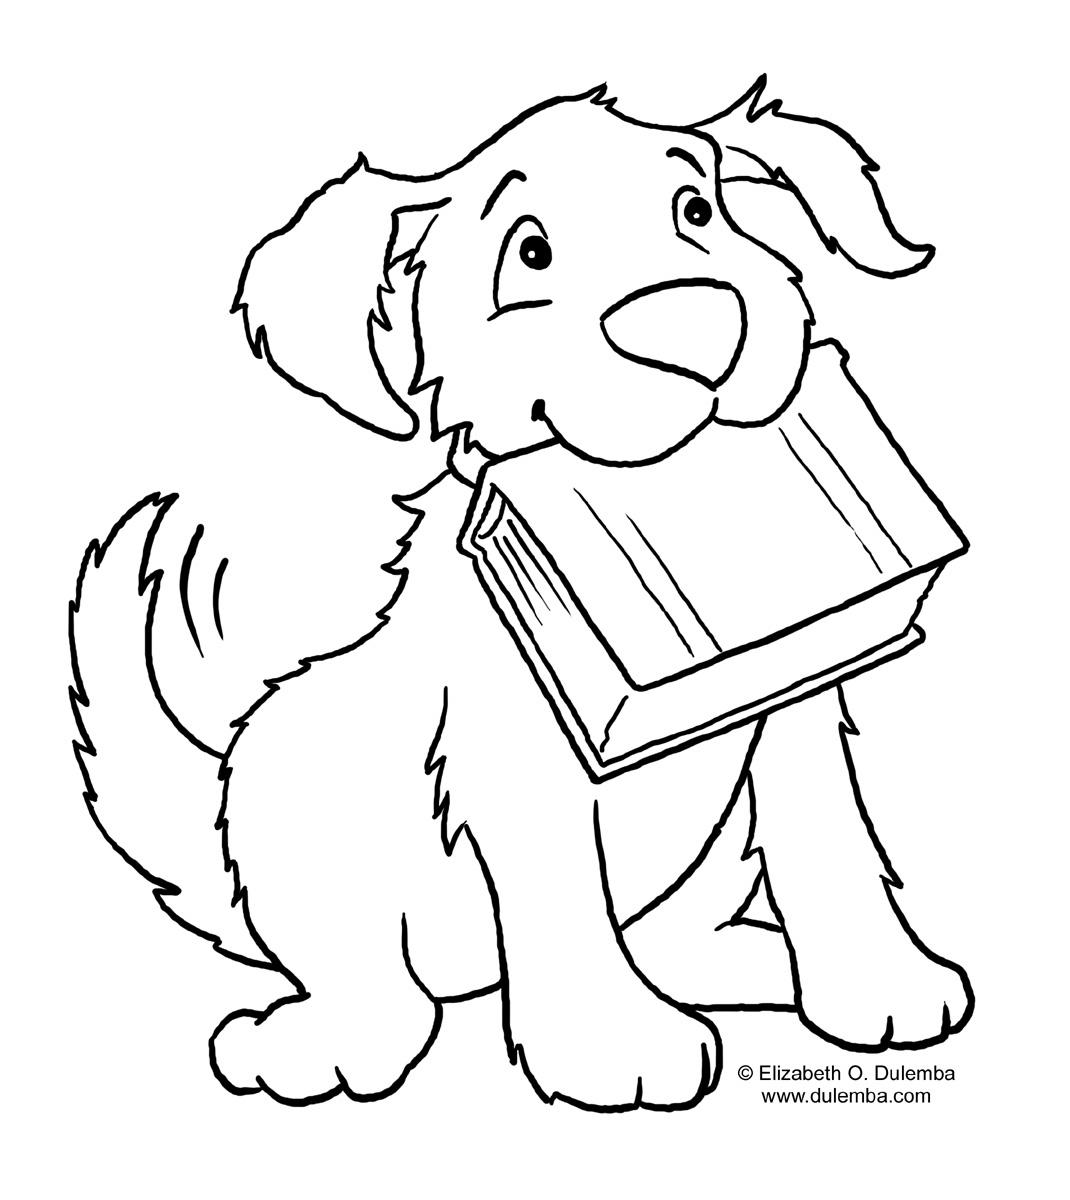 k coloring pages for kids - photo #21